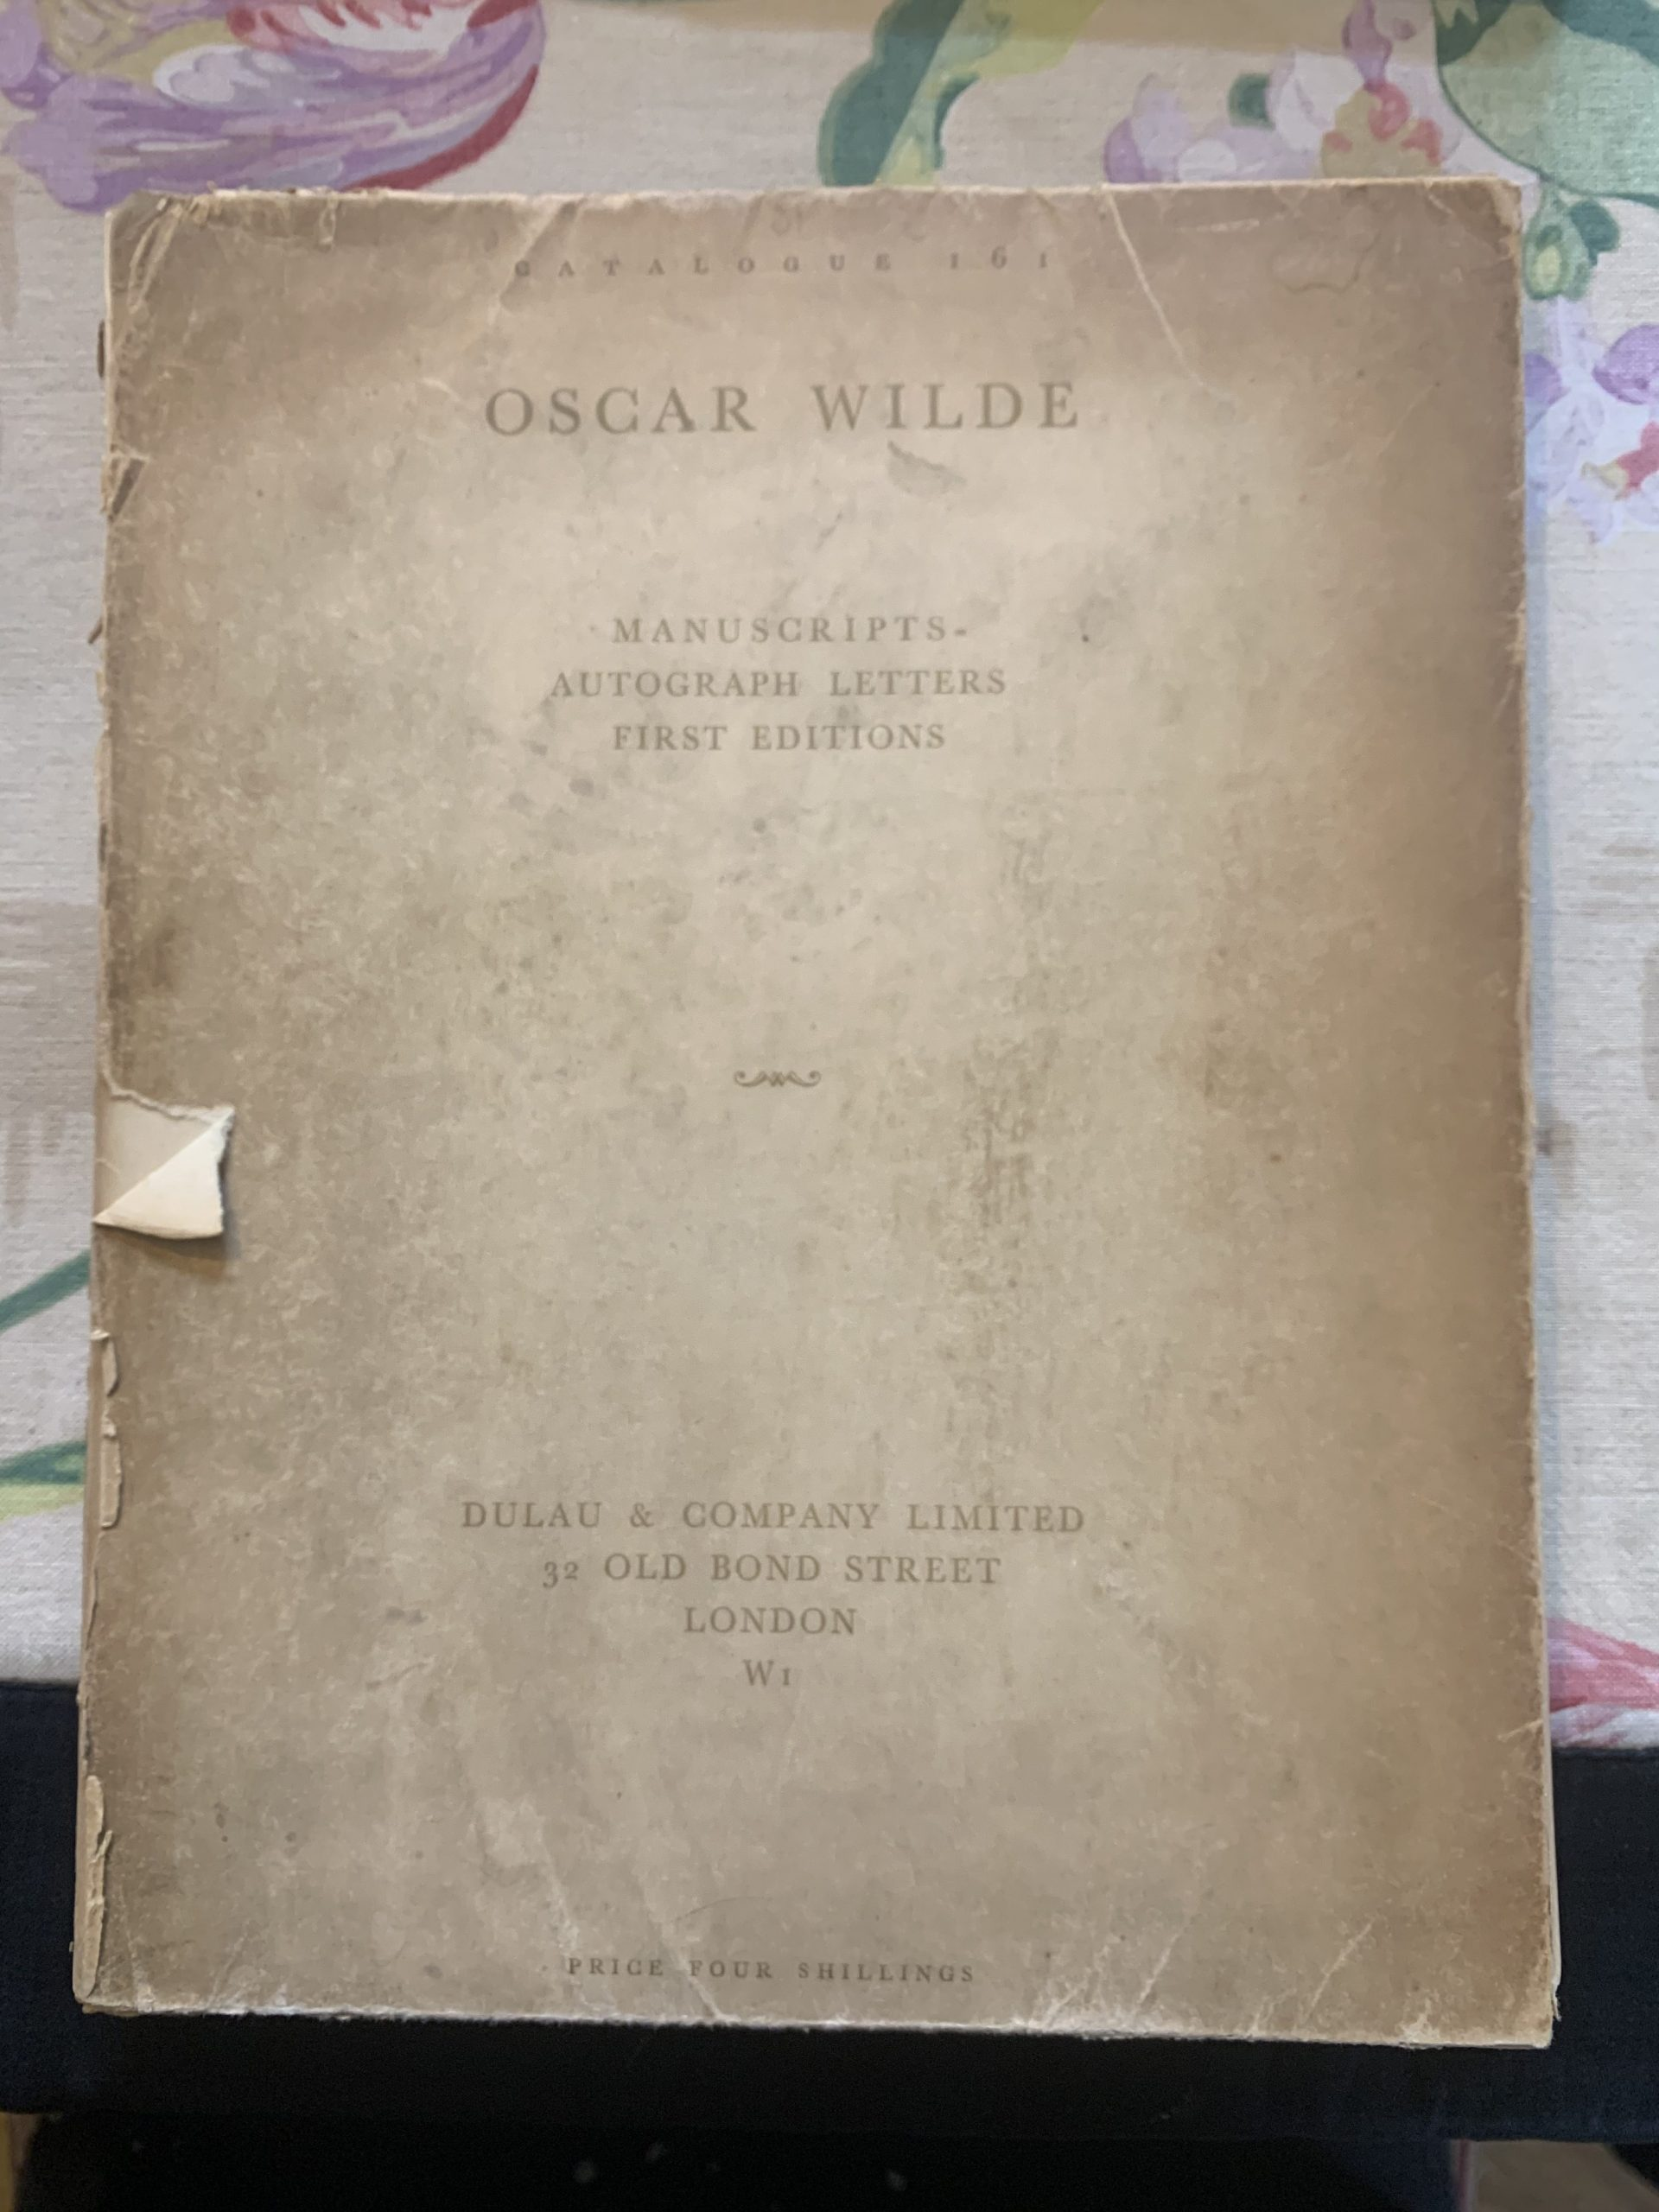 Catalogue 161. A Collection of Original Manuscripts, Letters & Books of Oscar Wilde